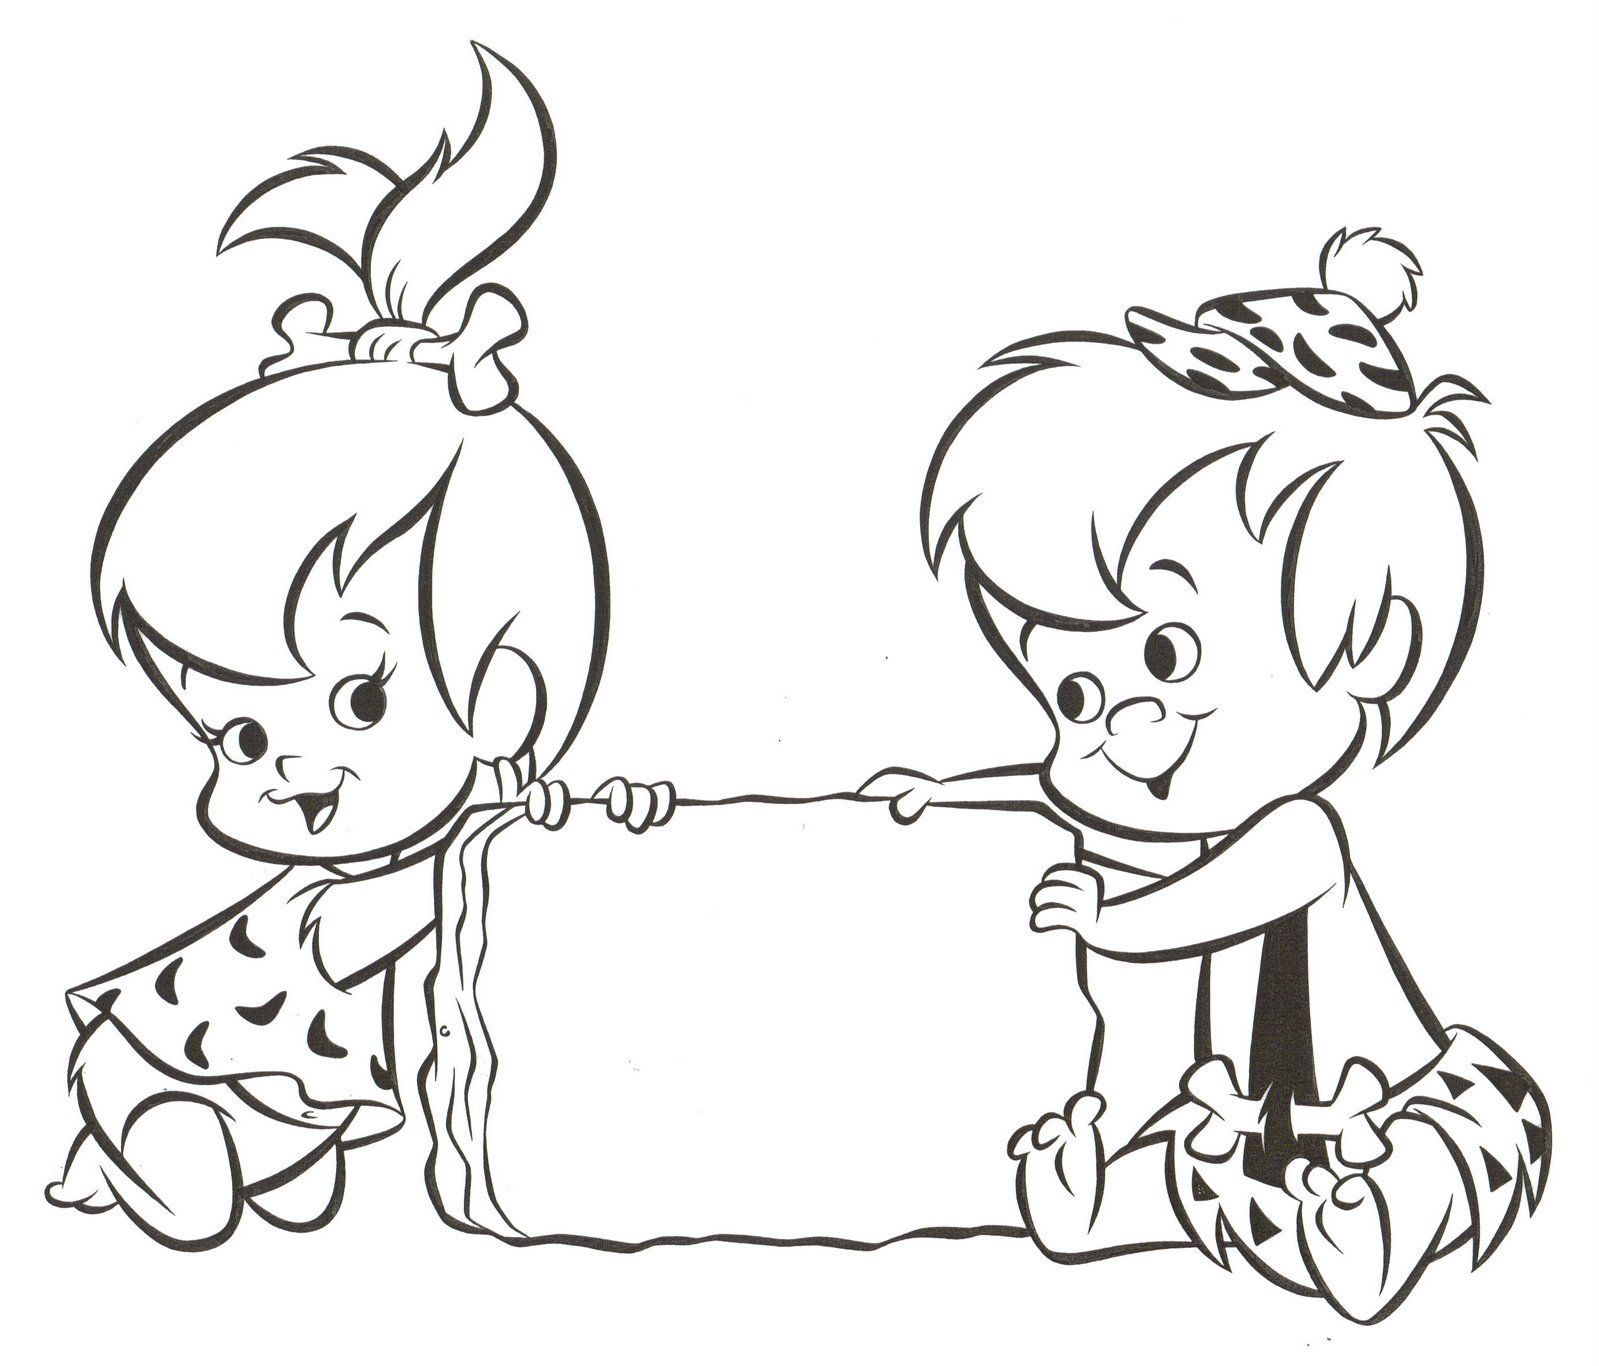 1599x1366 Pebbles And Bam Bam Coloring Pages Bday Party